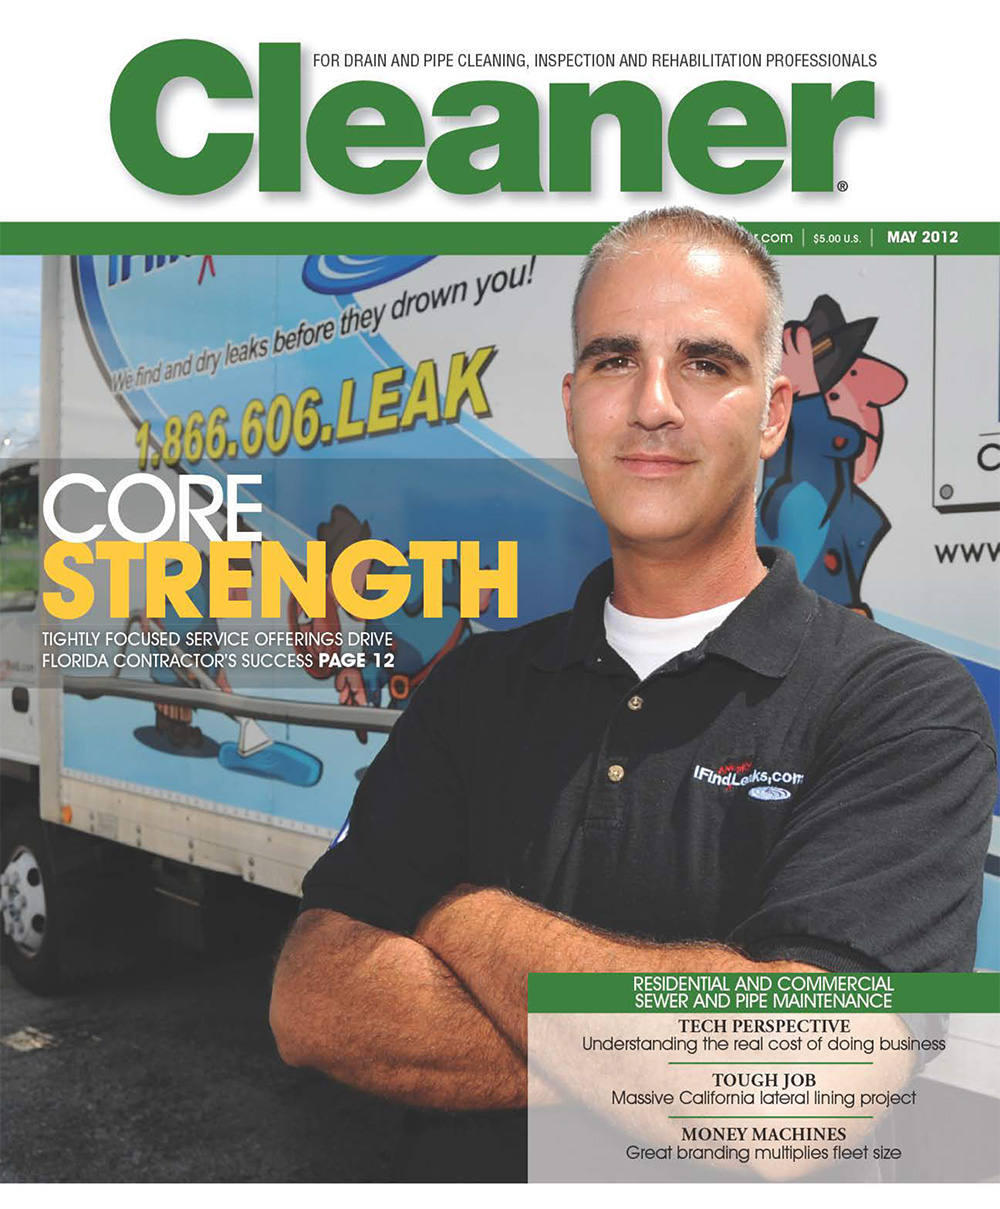 The Cleaner Magazine